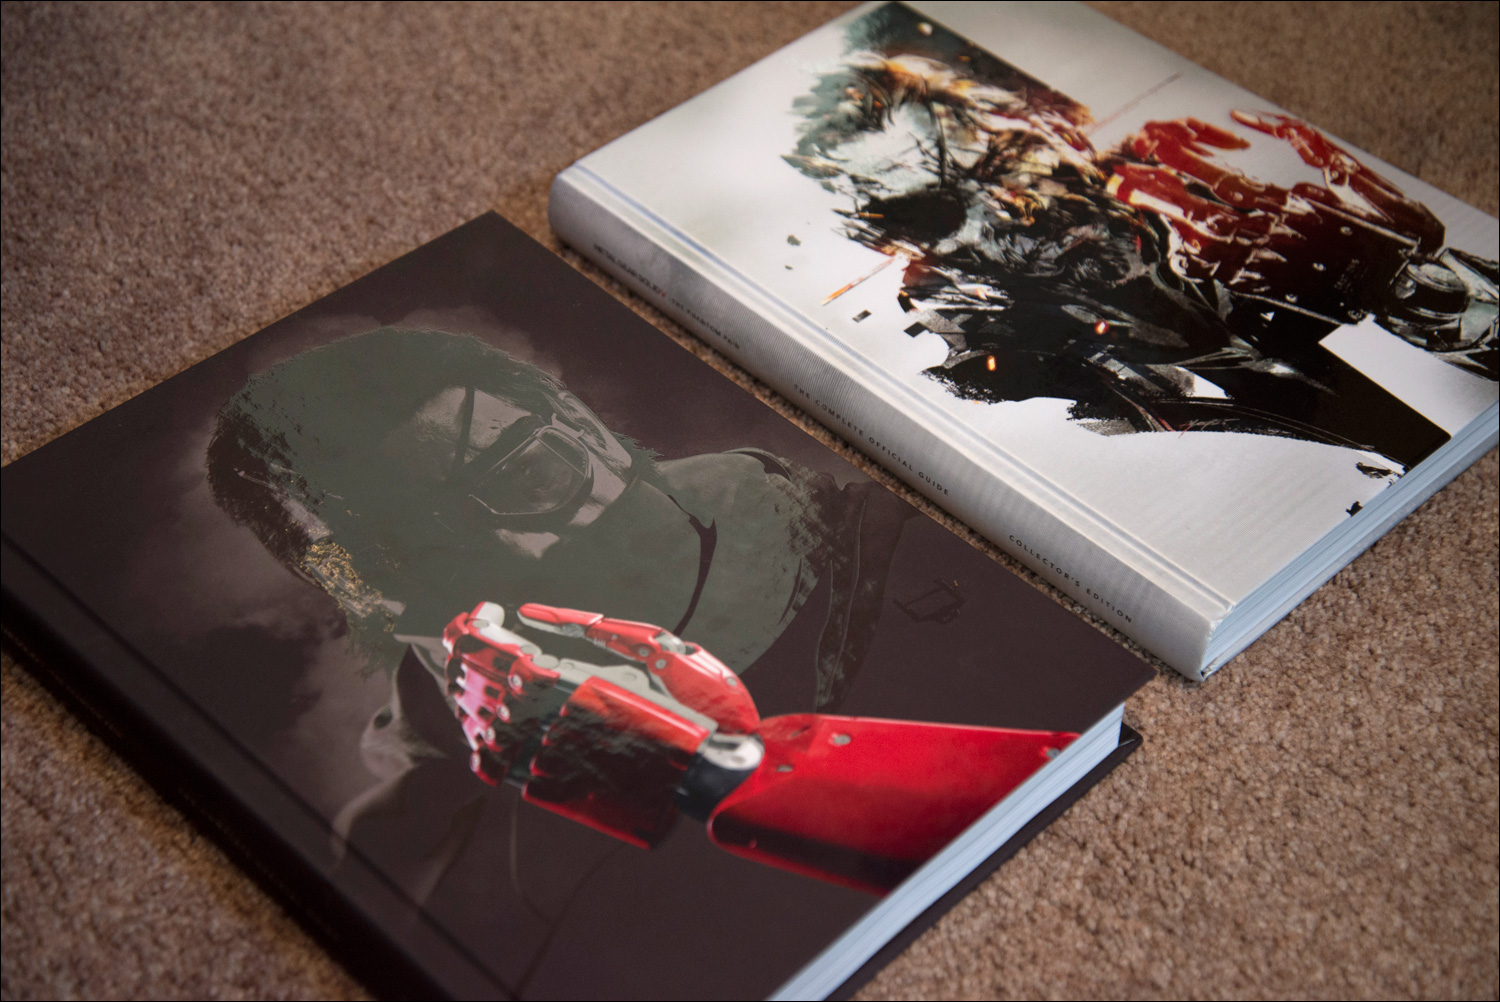 Metal-Gear-Solid-V-The-Phantom-Pain-Collector's-Edition-Guides